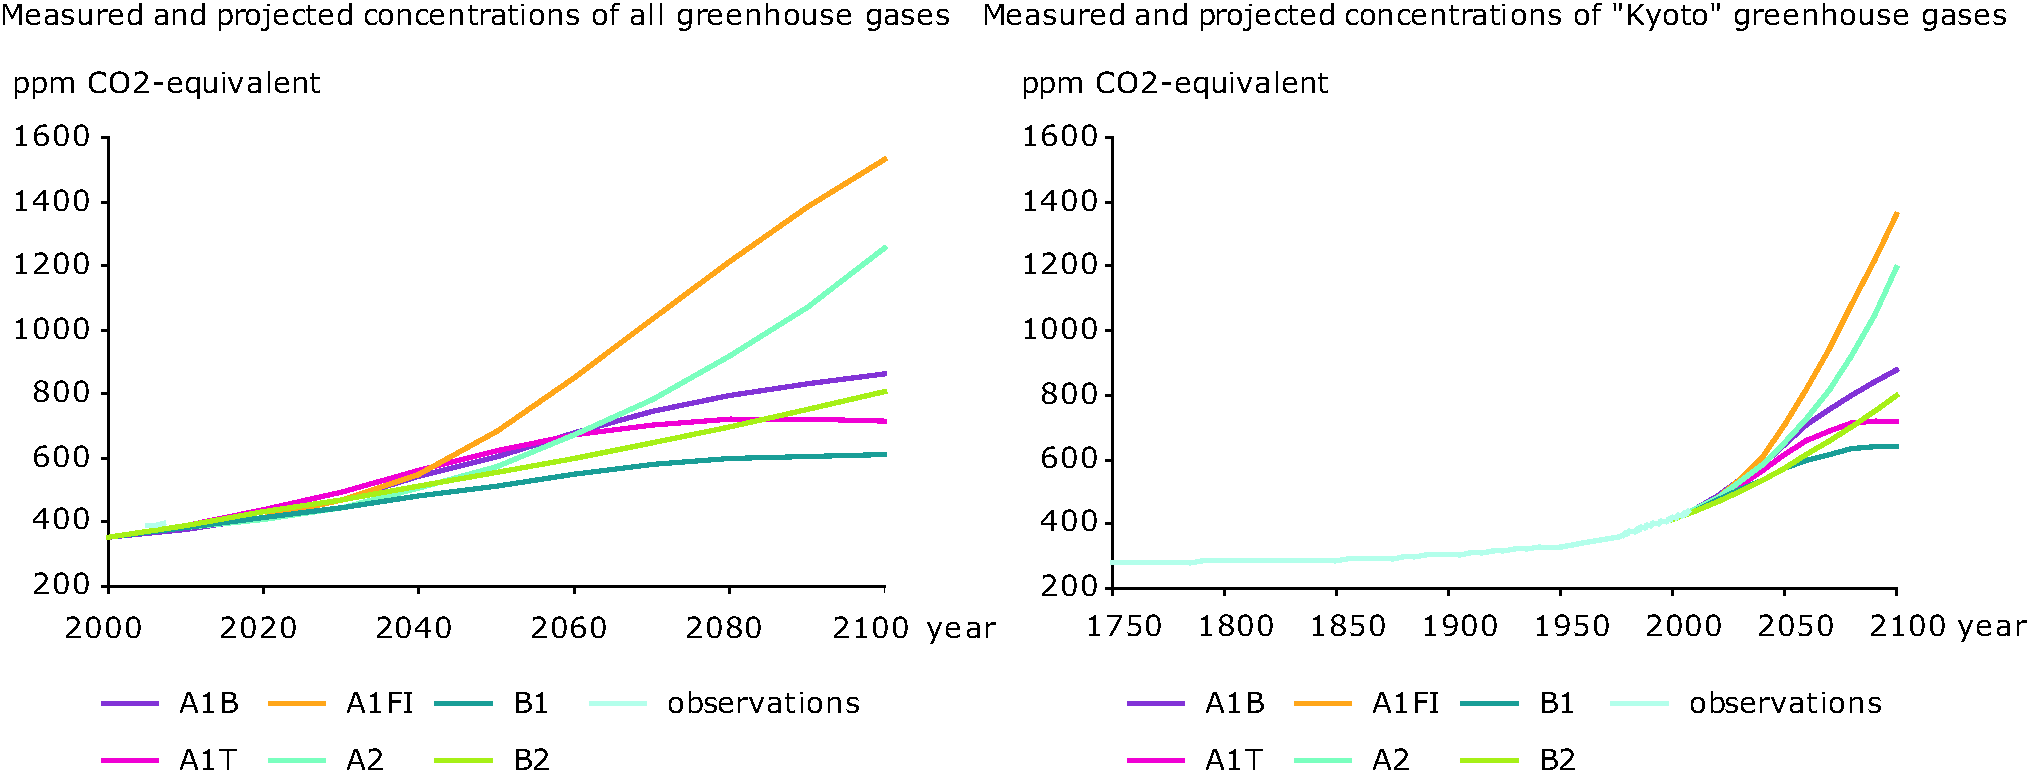 Observed and projected changed in the overall Kyoto gasses (Fig 1a) and all greenhouse gasses, expressed in CO2-equivalents (IPCC, 2007a, partly based on IPCC, 2001).